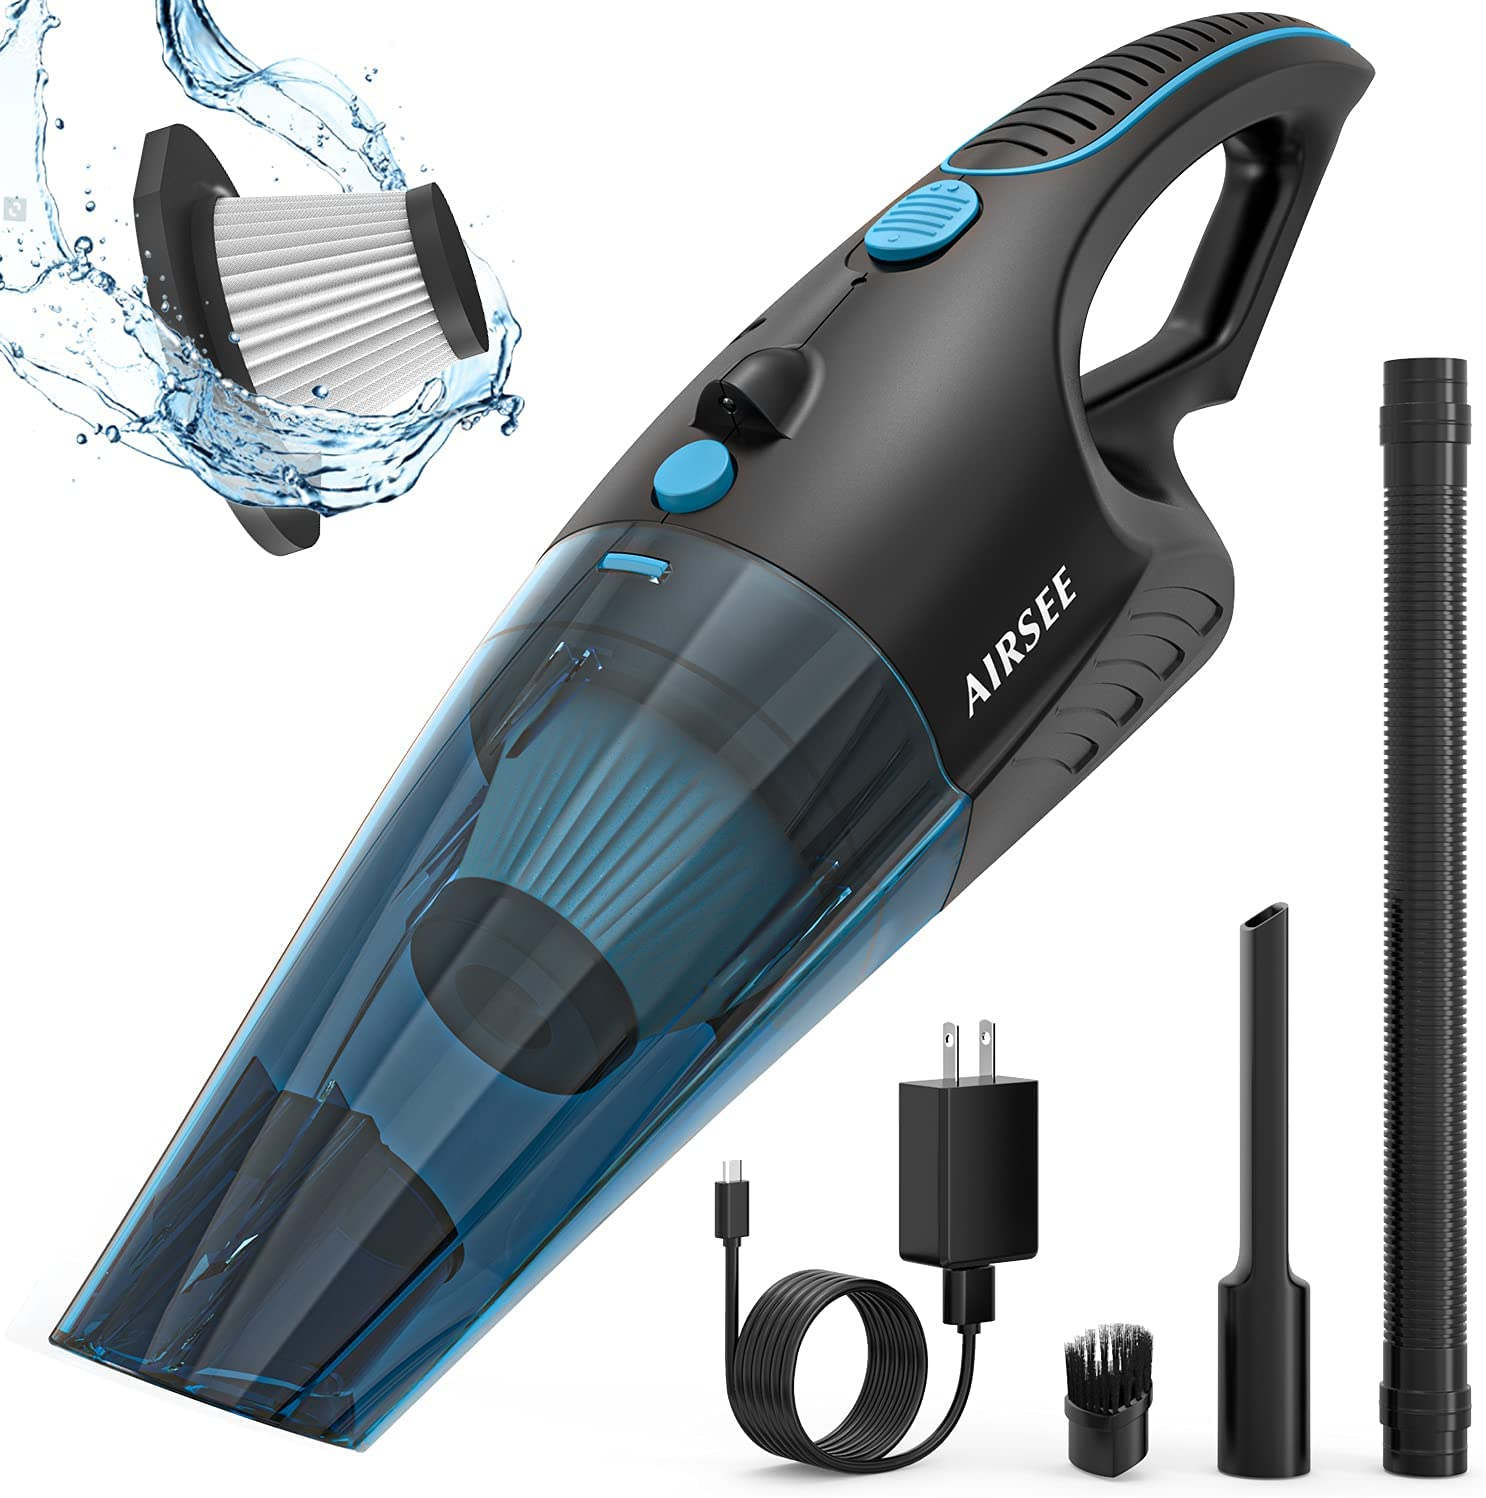 AIRSEE Vacuum Cleaner 2-Speed Cordless Vacuum Cleaner with High Power 14000 PA Suction Car Vacuum Suitable for Vacuum Storage Bags Portable Handheld Vacuum for Pet Hair, Home, and Car Cleaning